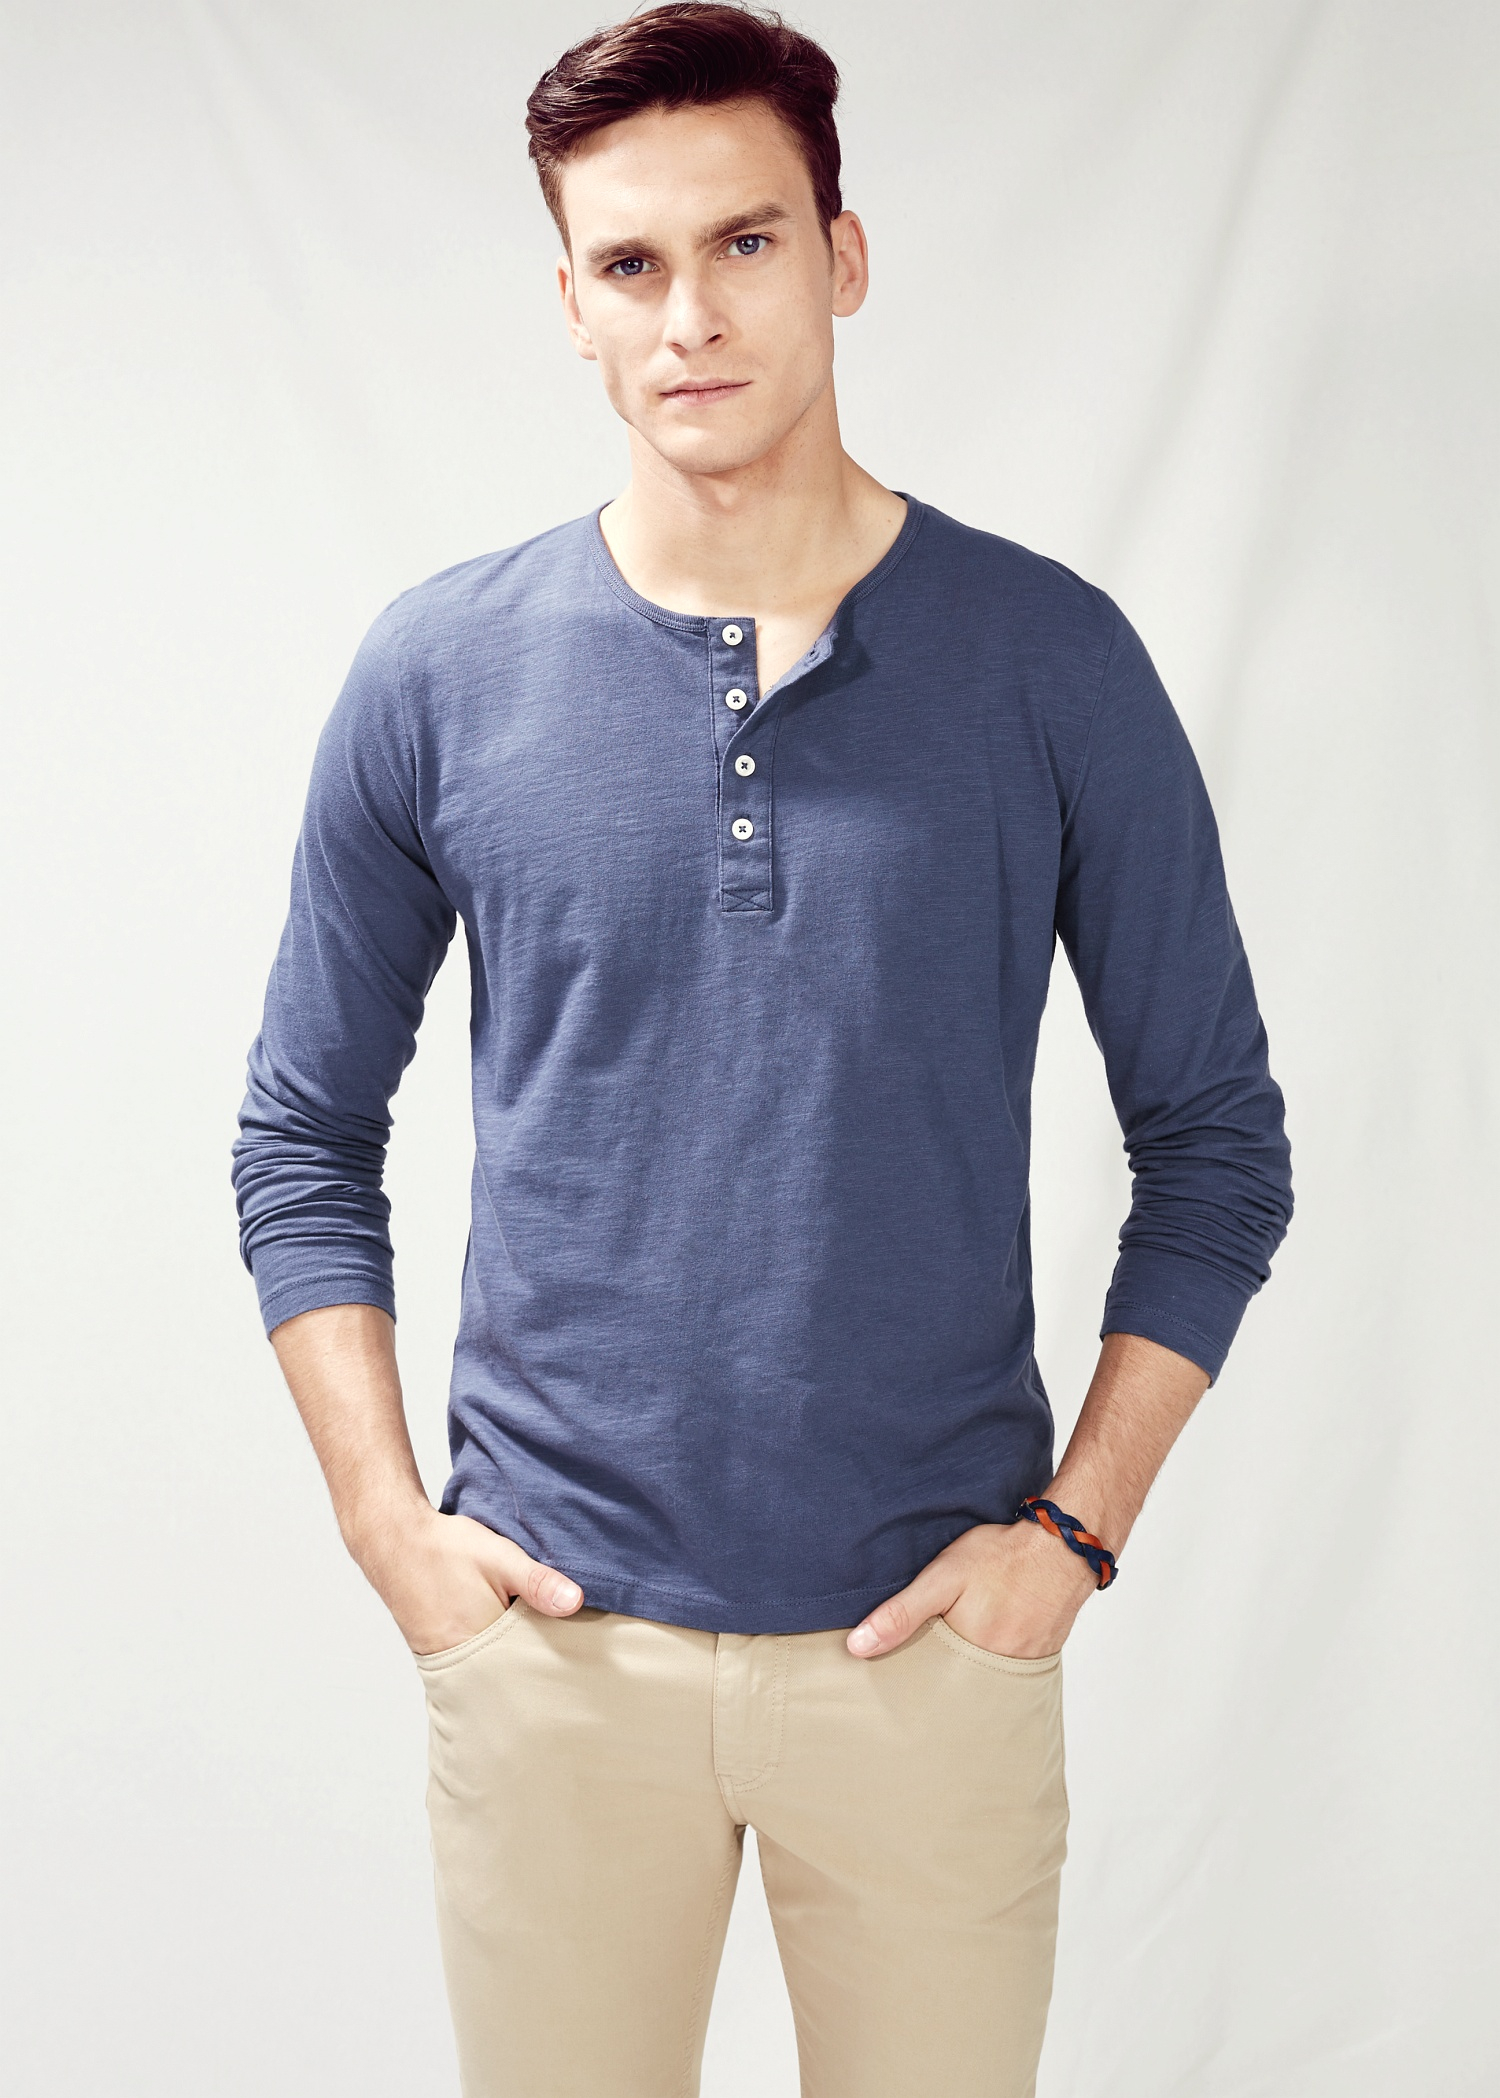 Find wholesale henley shirts online from China henley shirts wholesalers and dropshippers. DHgate helps you get high quality discount henley shirts at bulk prices. shopnow-vjpmehag.cf provides henley shirts items from China top selected Men's T-Shirts, Men's Tees & Polos, Men's Clothing, Apparel suppliers at wholesale prices with worldwide delivery.